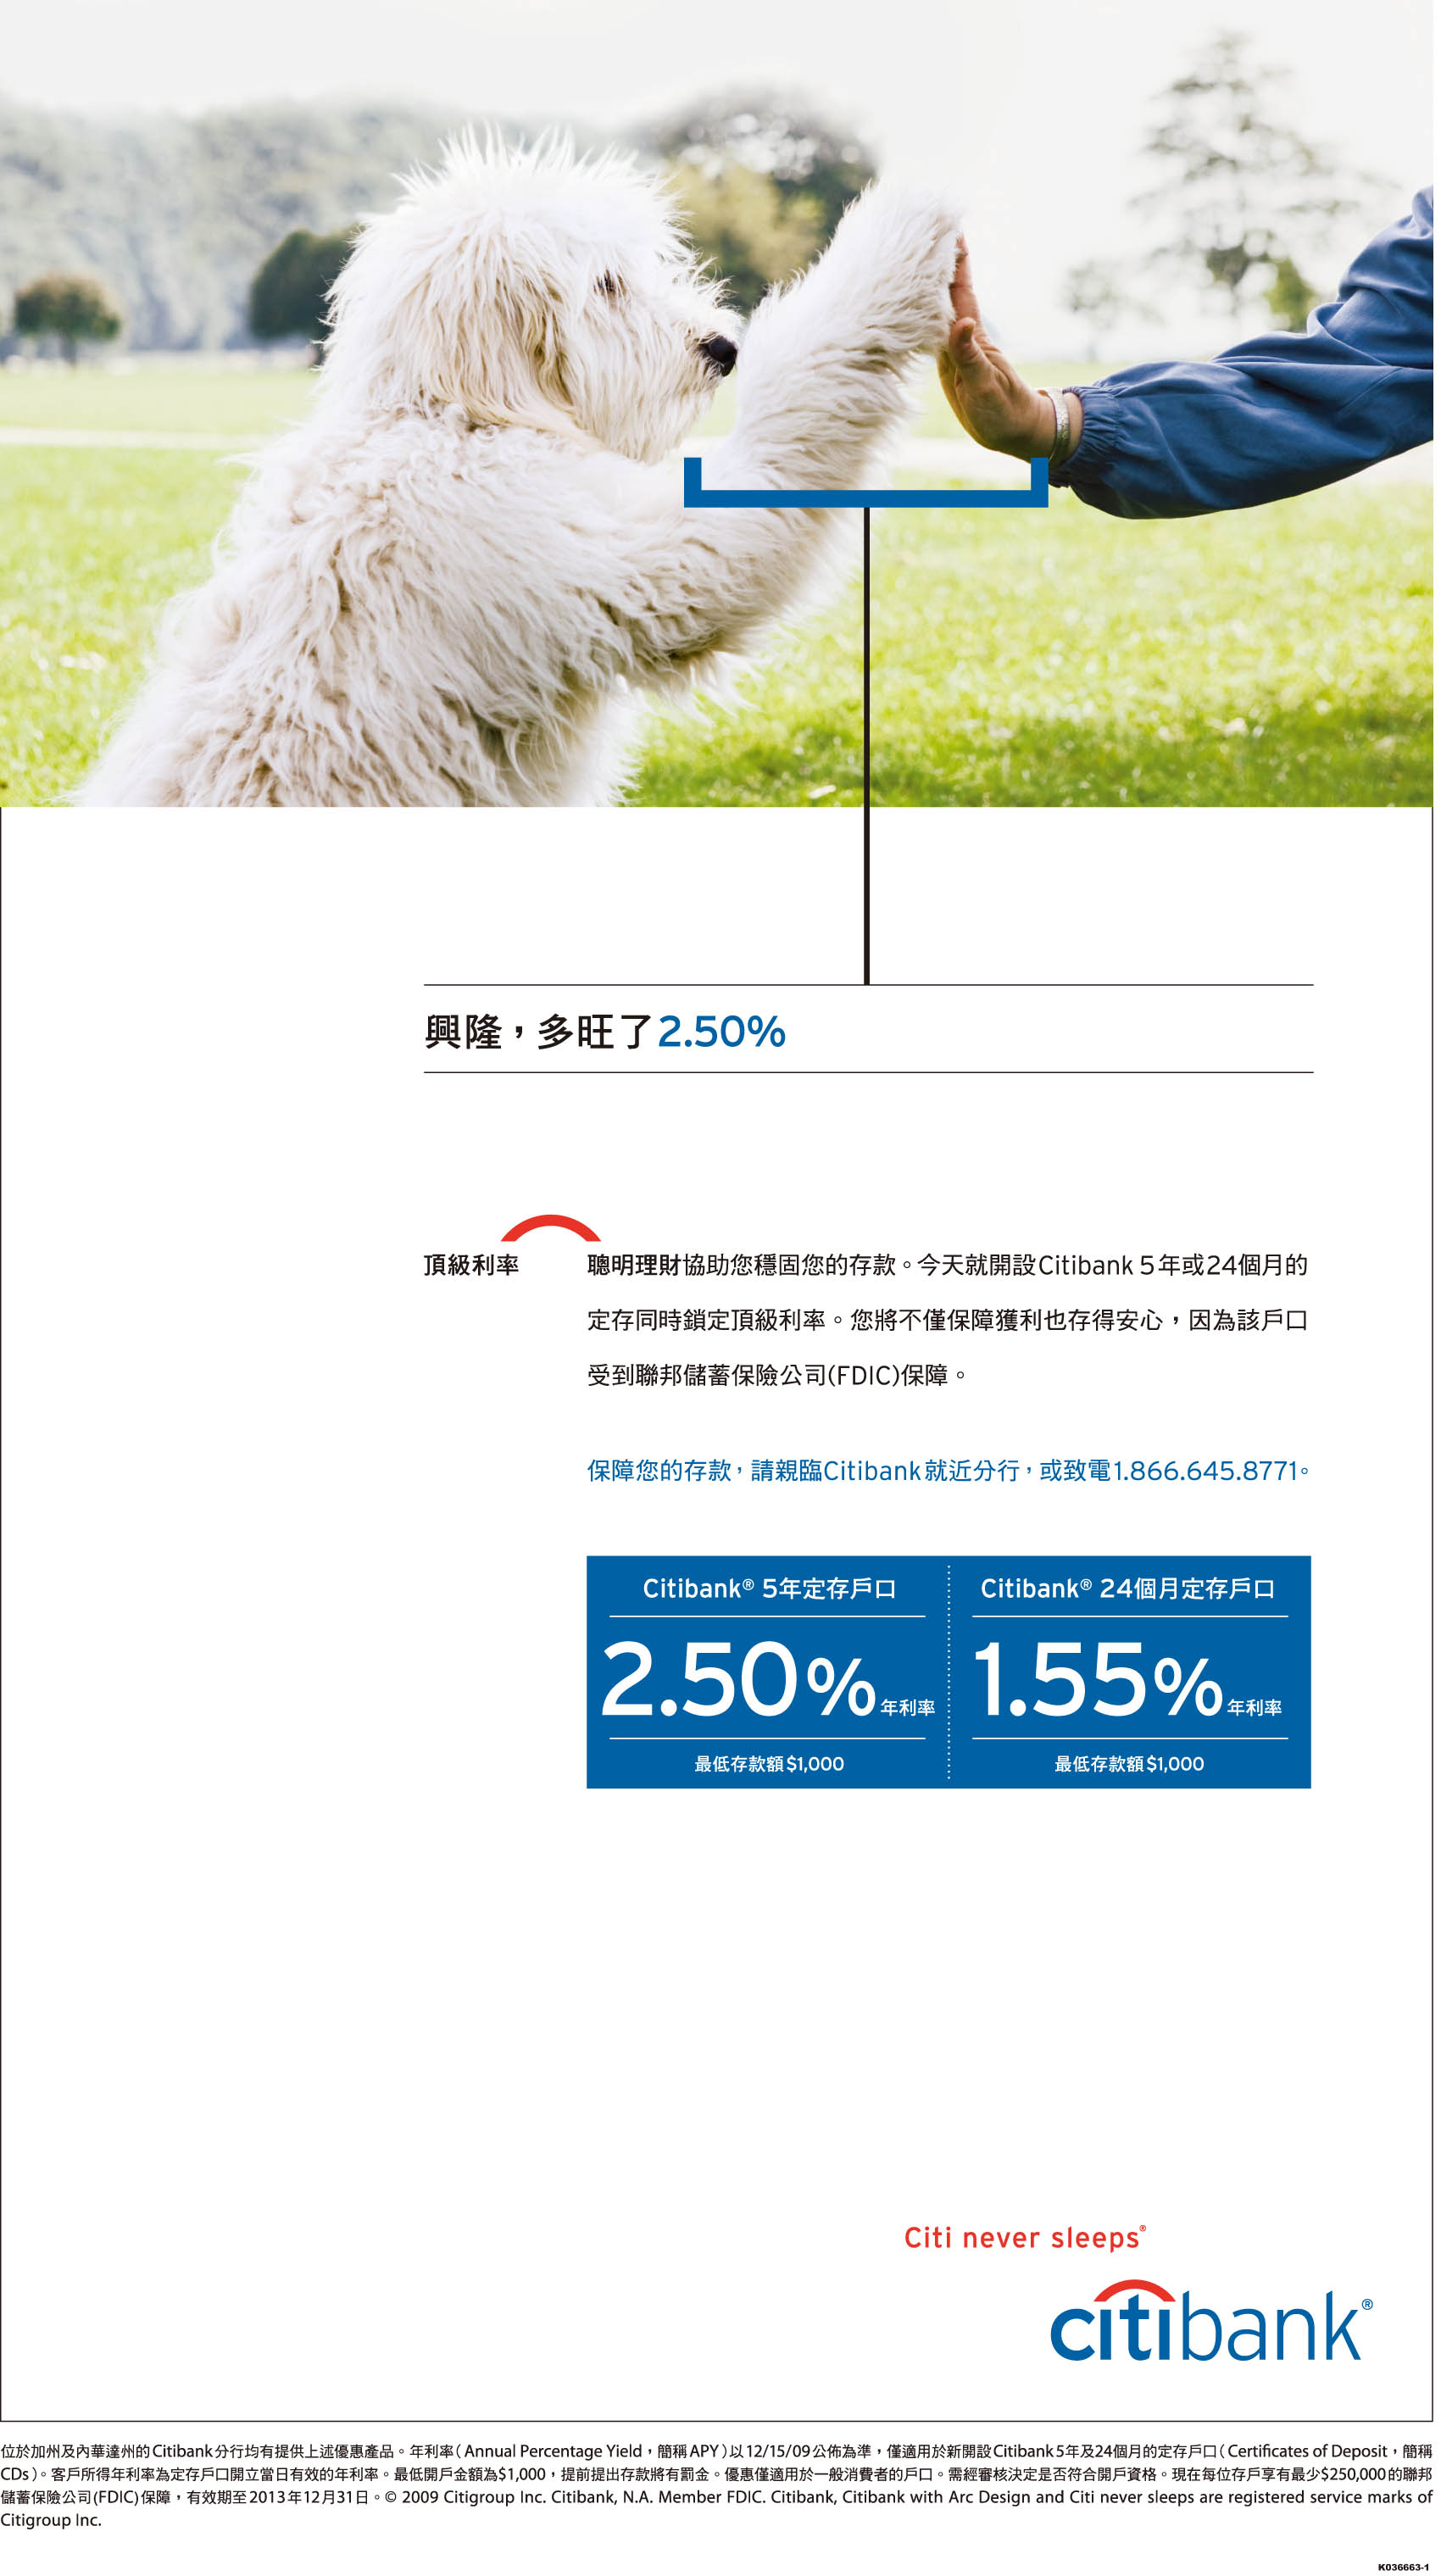 Sample Display Advertisements Of Financial Institutions On Chinese